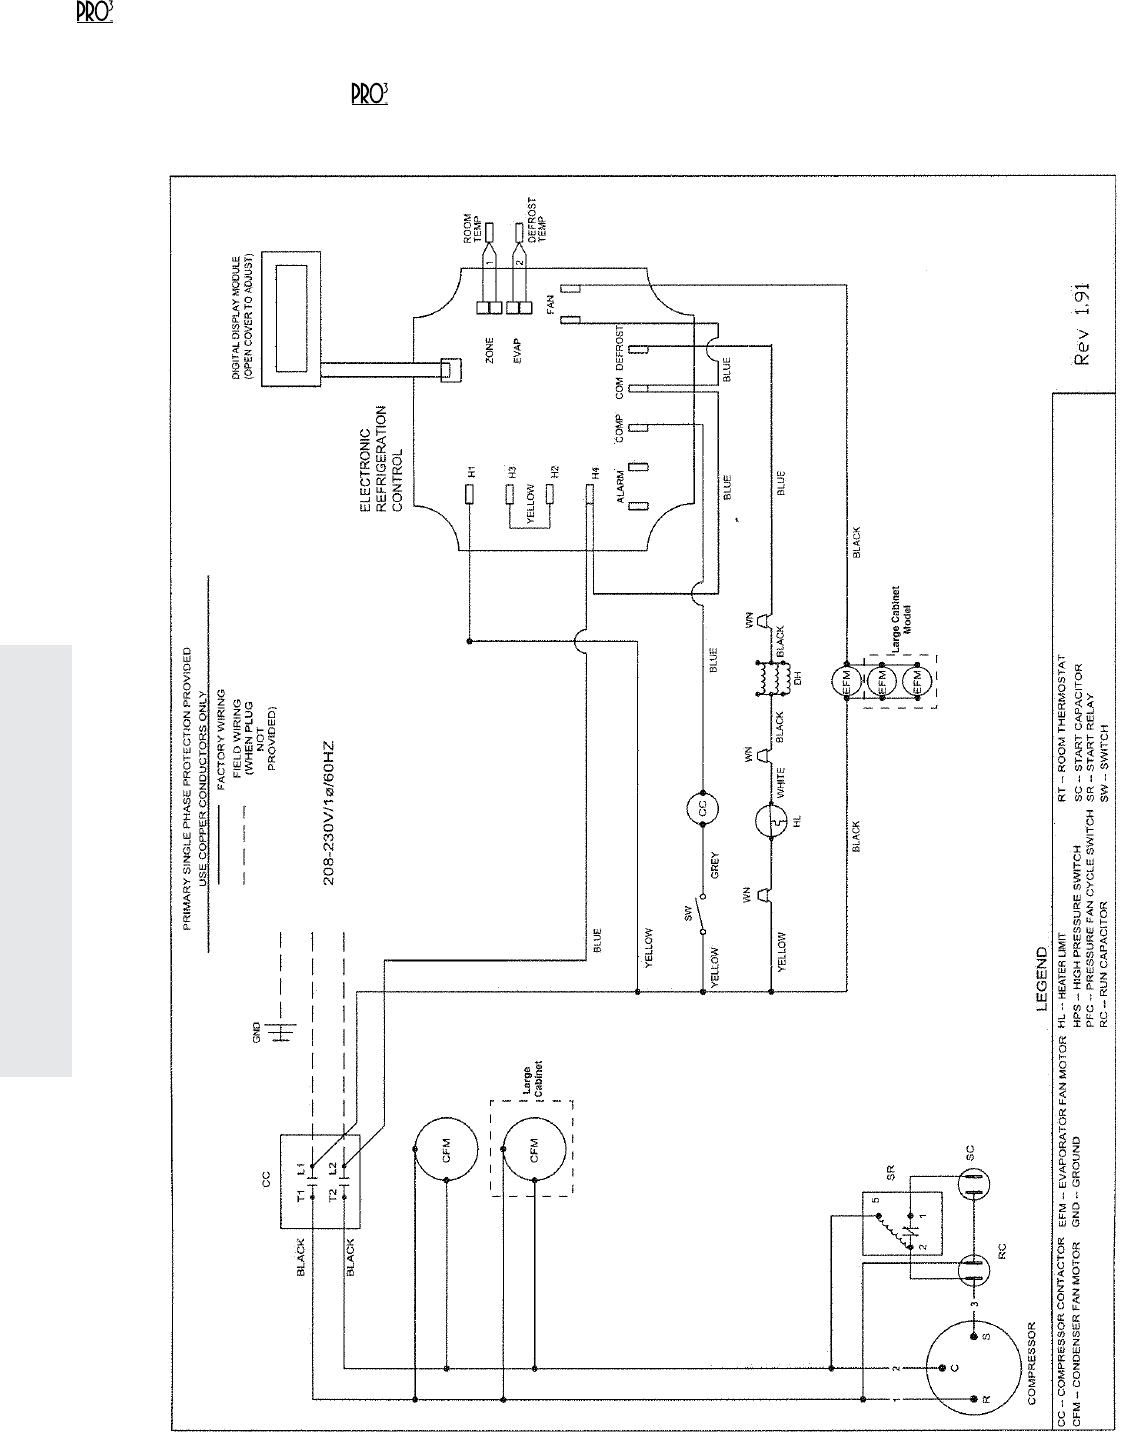 b8616a9a 7649 411a b648 d6245cba7e20 bg10 page 16 of heatcraft refrigeration products refrigerator h im 82b heatcraft wiring diagram at webbmarketing.co